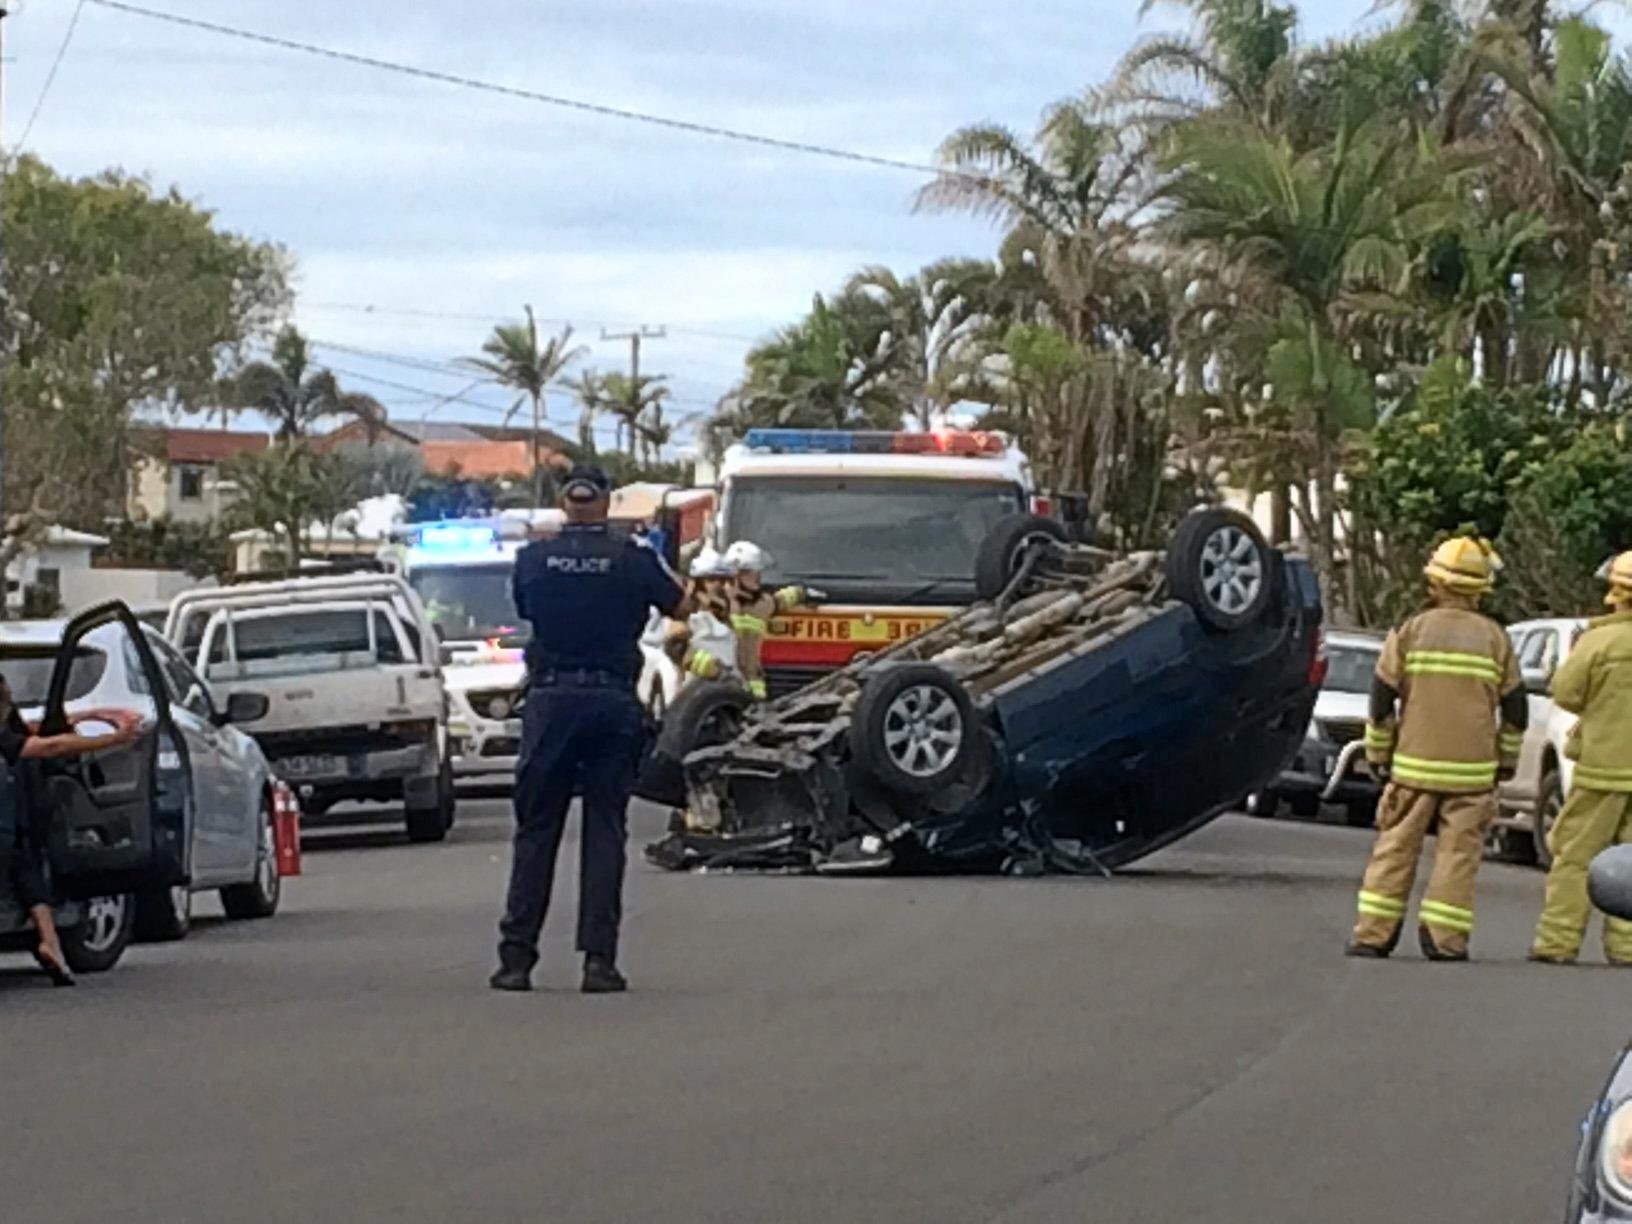 A car is on its roof after it reportedly crashed into a parked car.